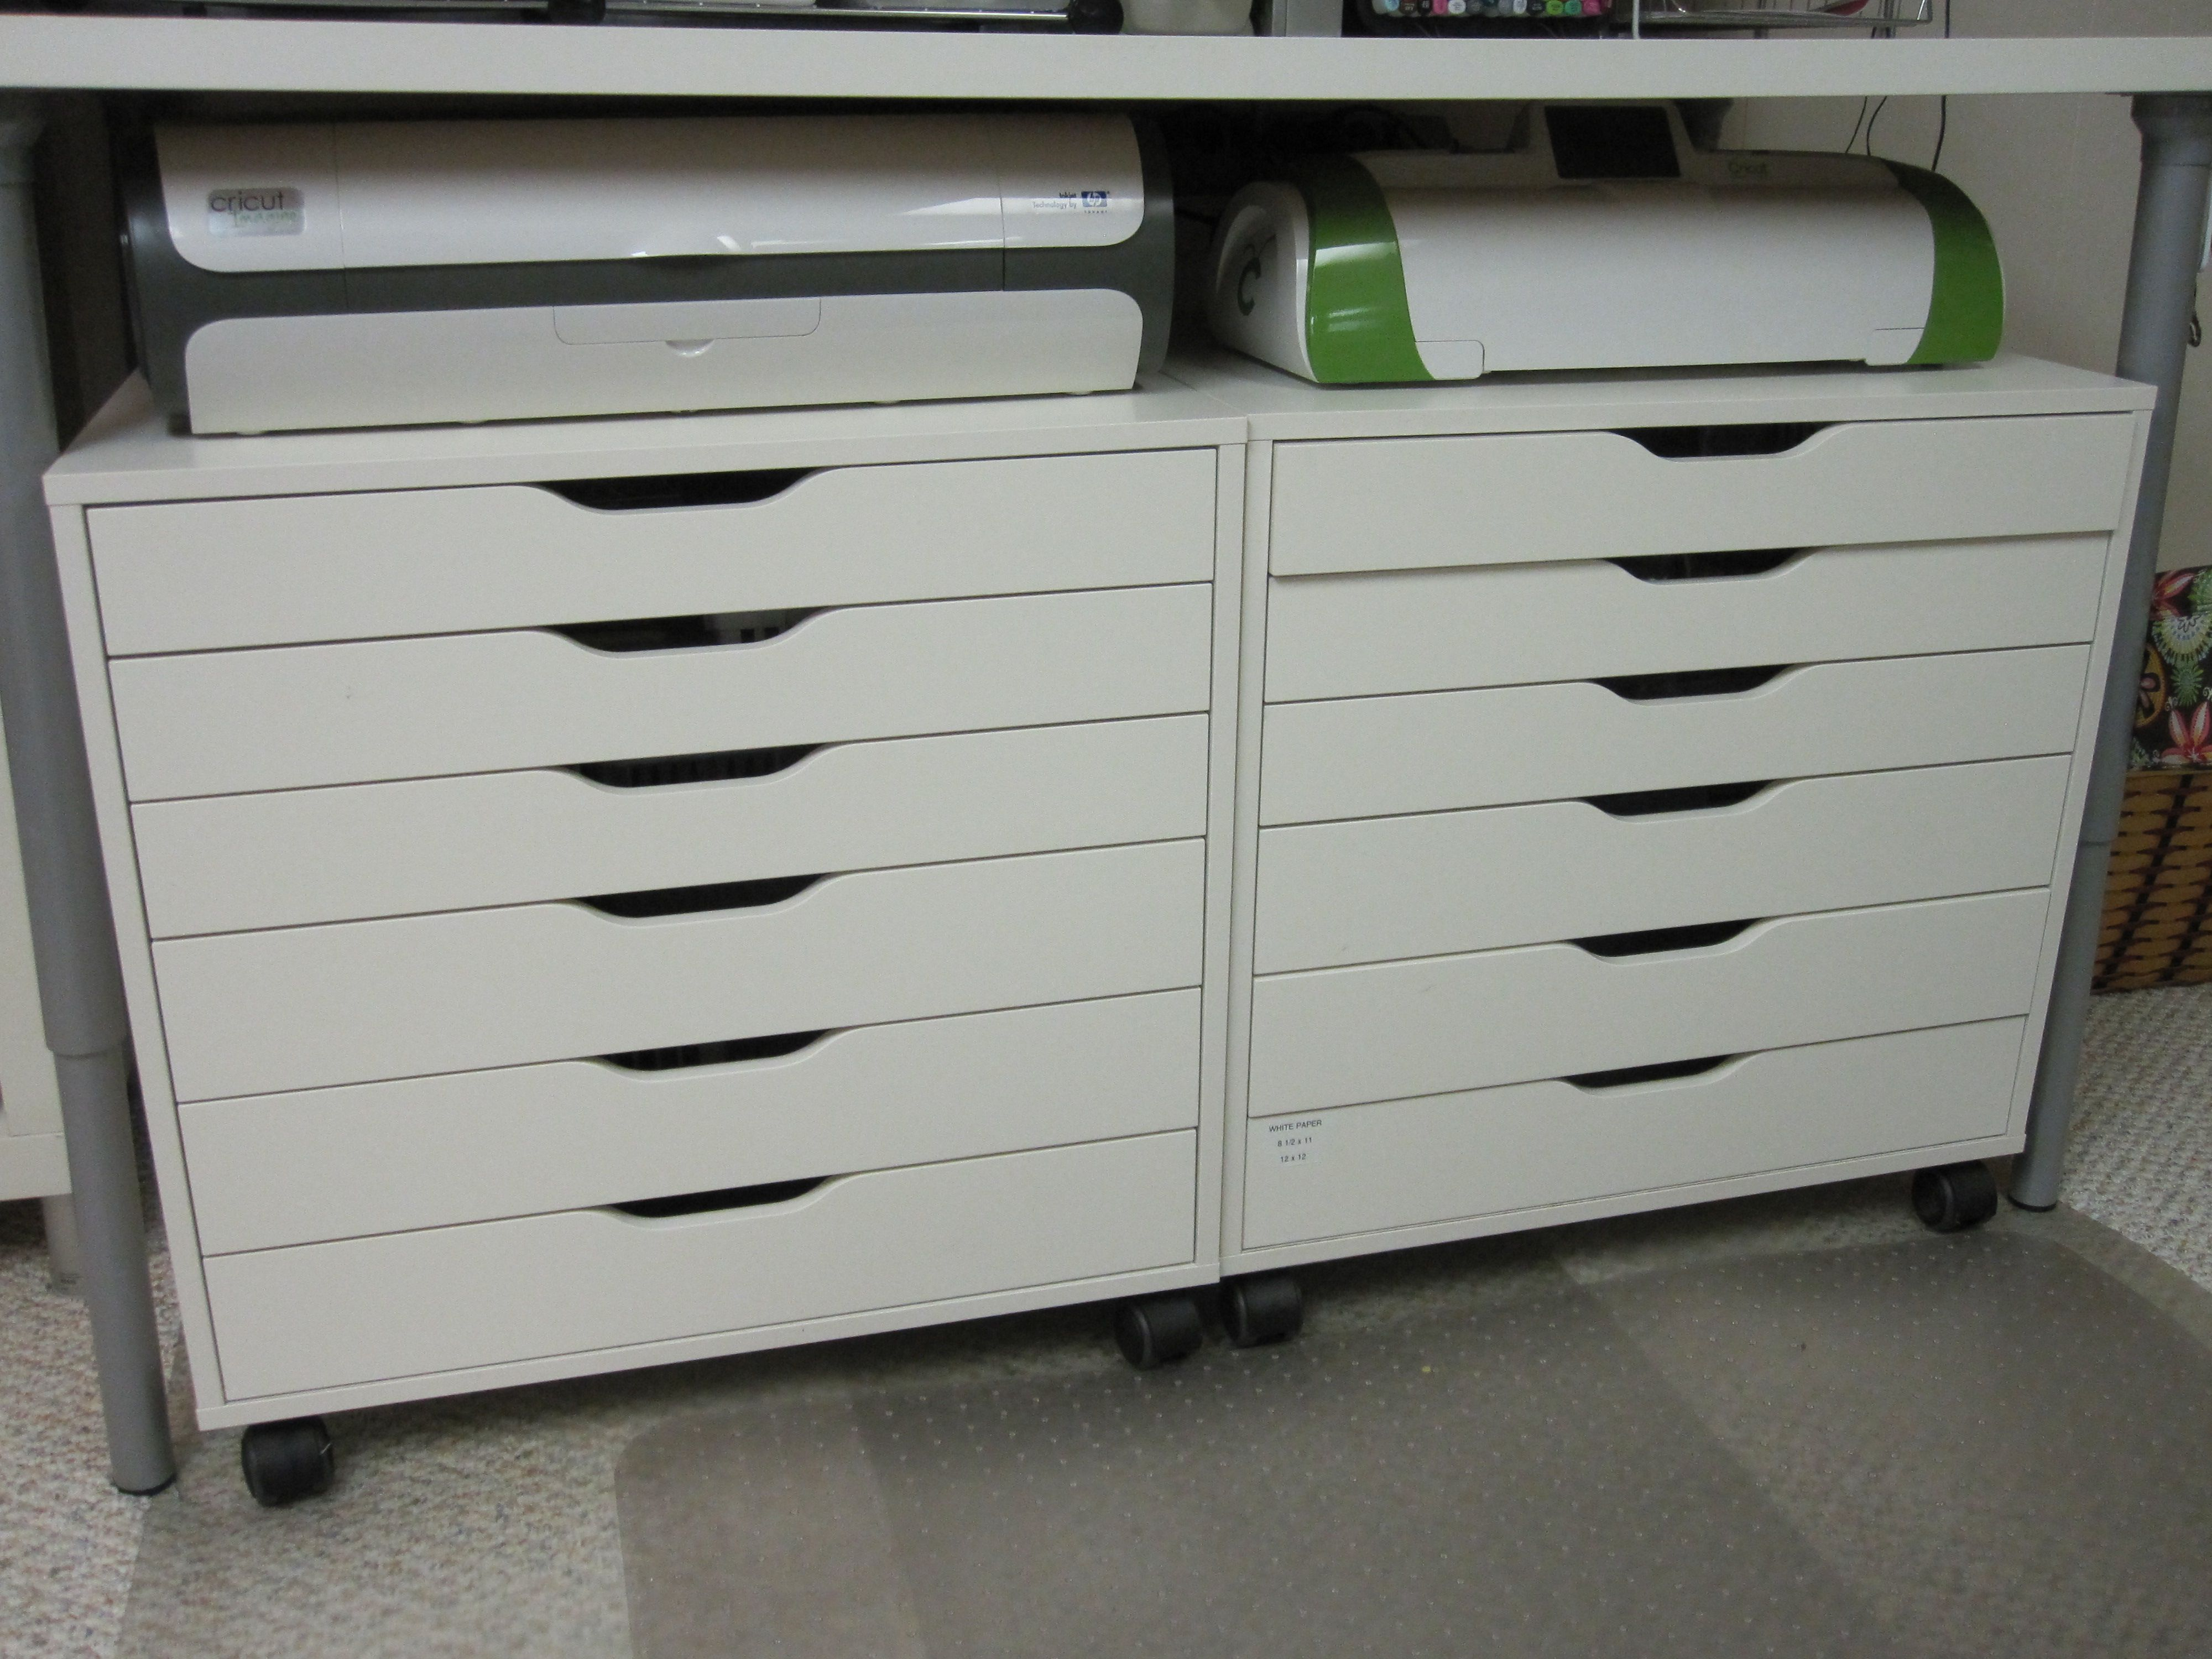 Cricut Station Ikea Rolling Cart And With Ikea Table Over It Could Also Roll Under A Counter Craft Room Craft Storage Solutions Scrapbook Room